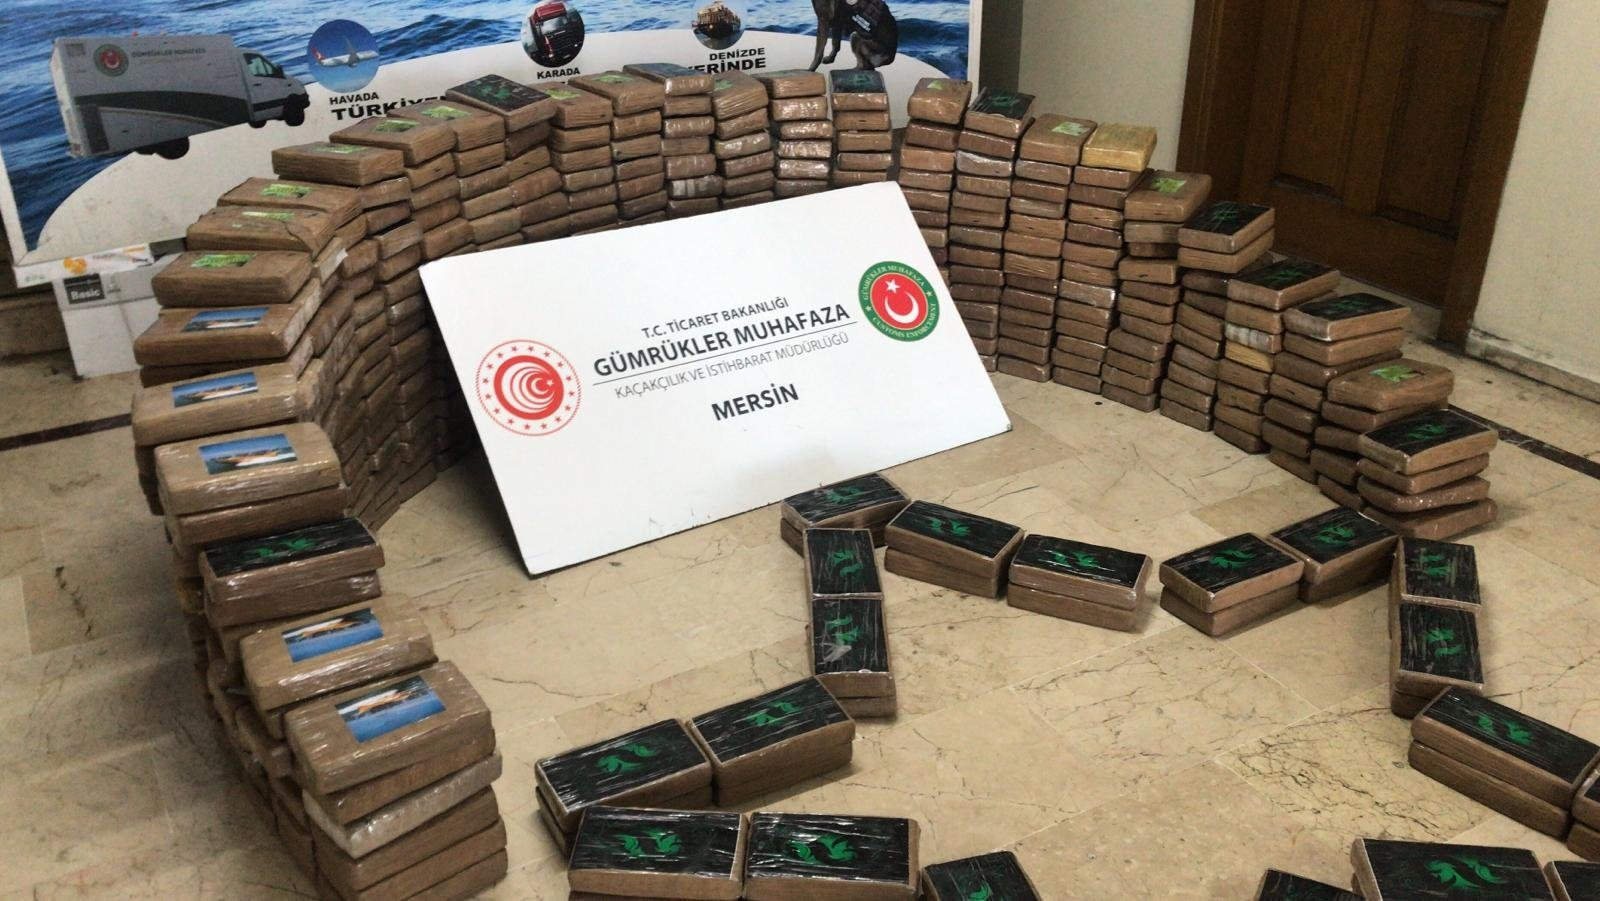 Seized cocaine stacked on display, in Mersin, southern Turkey, June 23, 2021. (AA PHOTO)